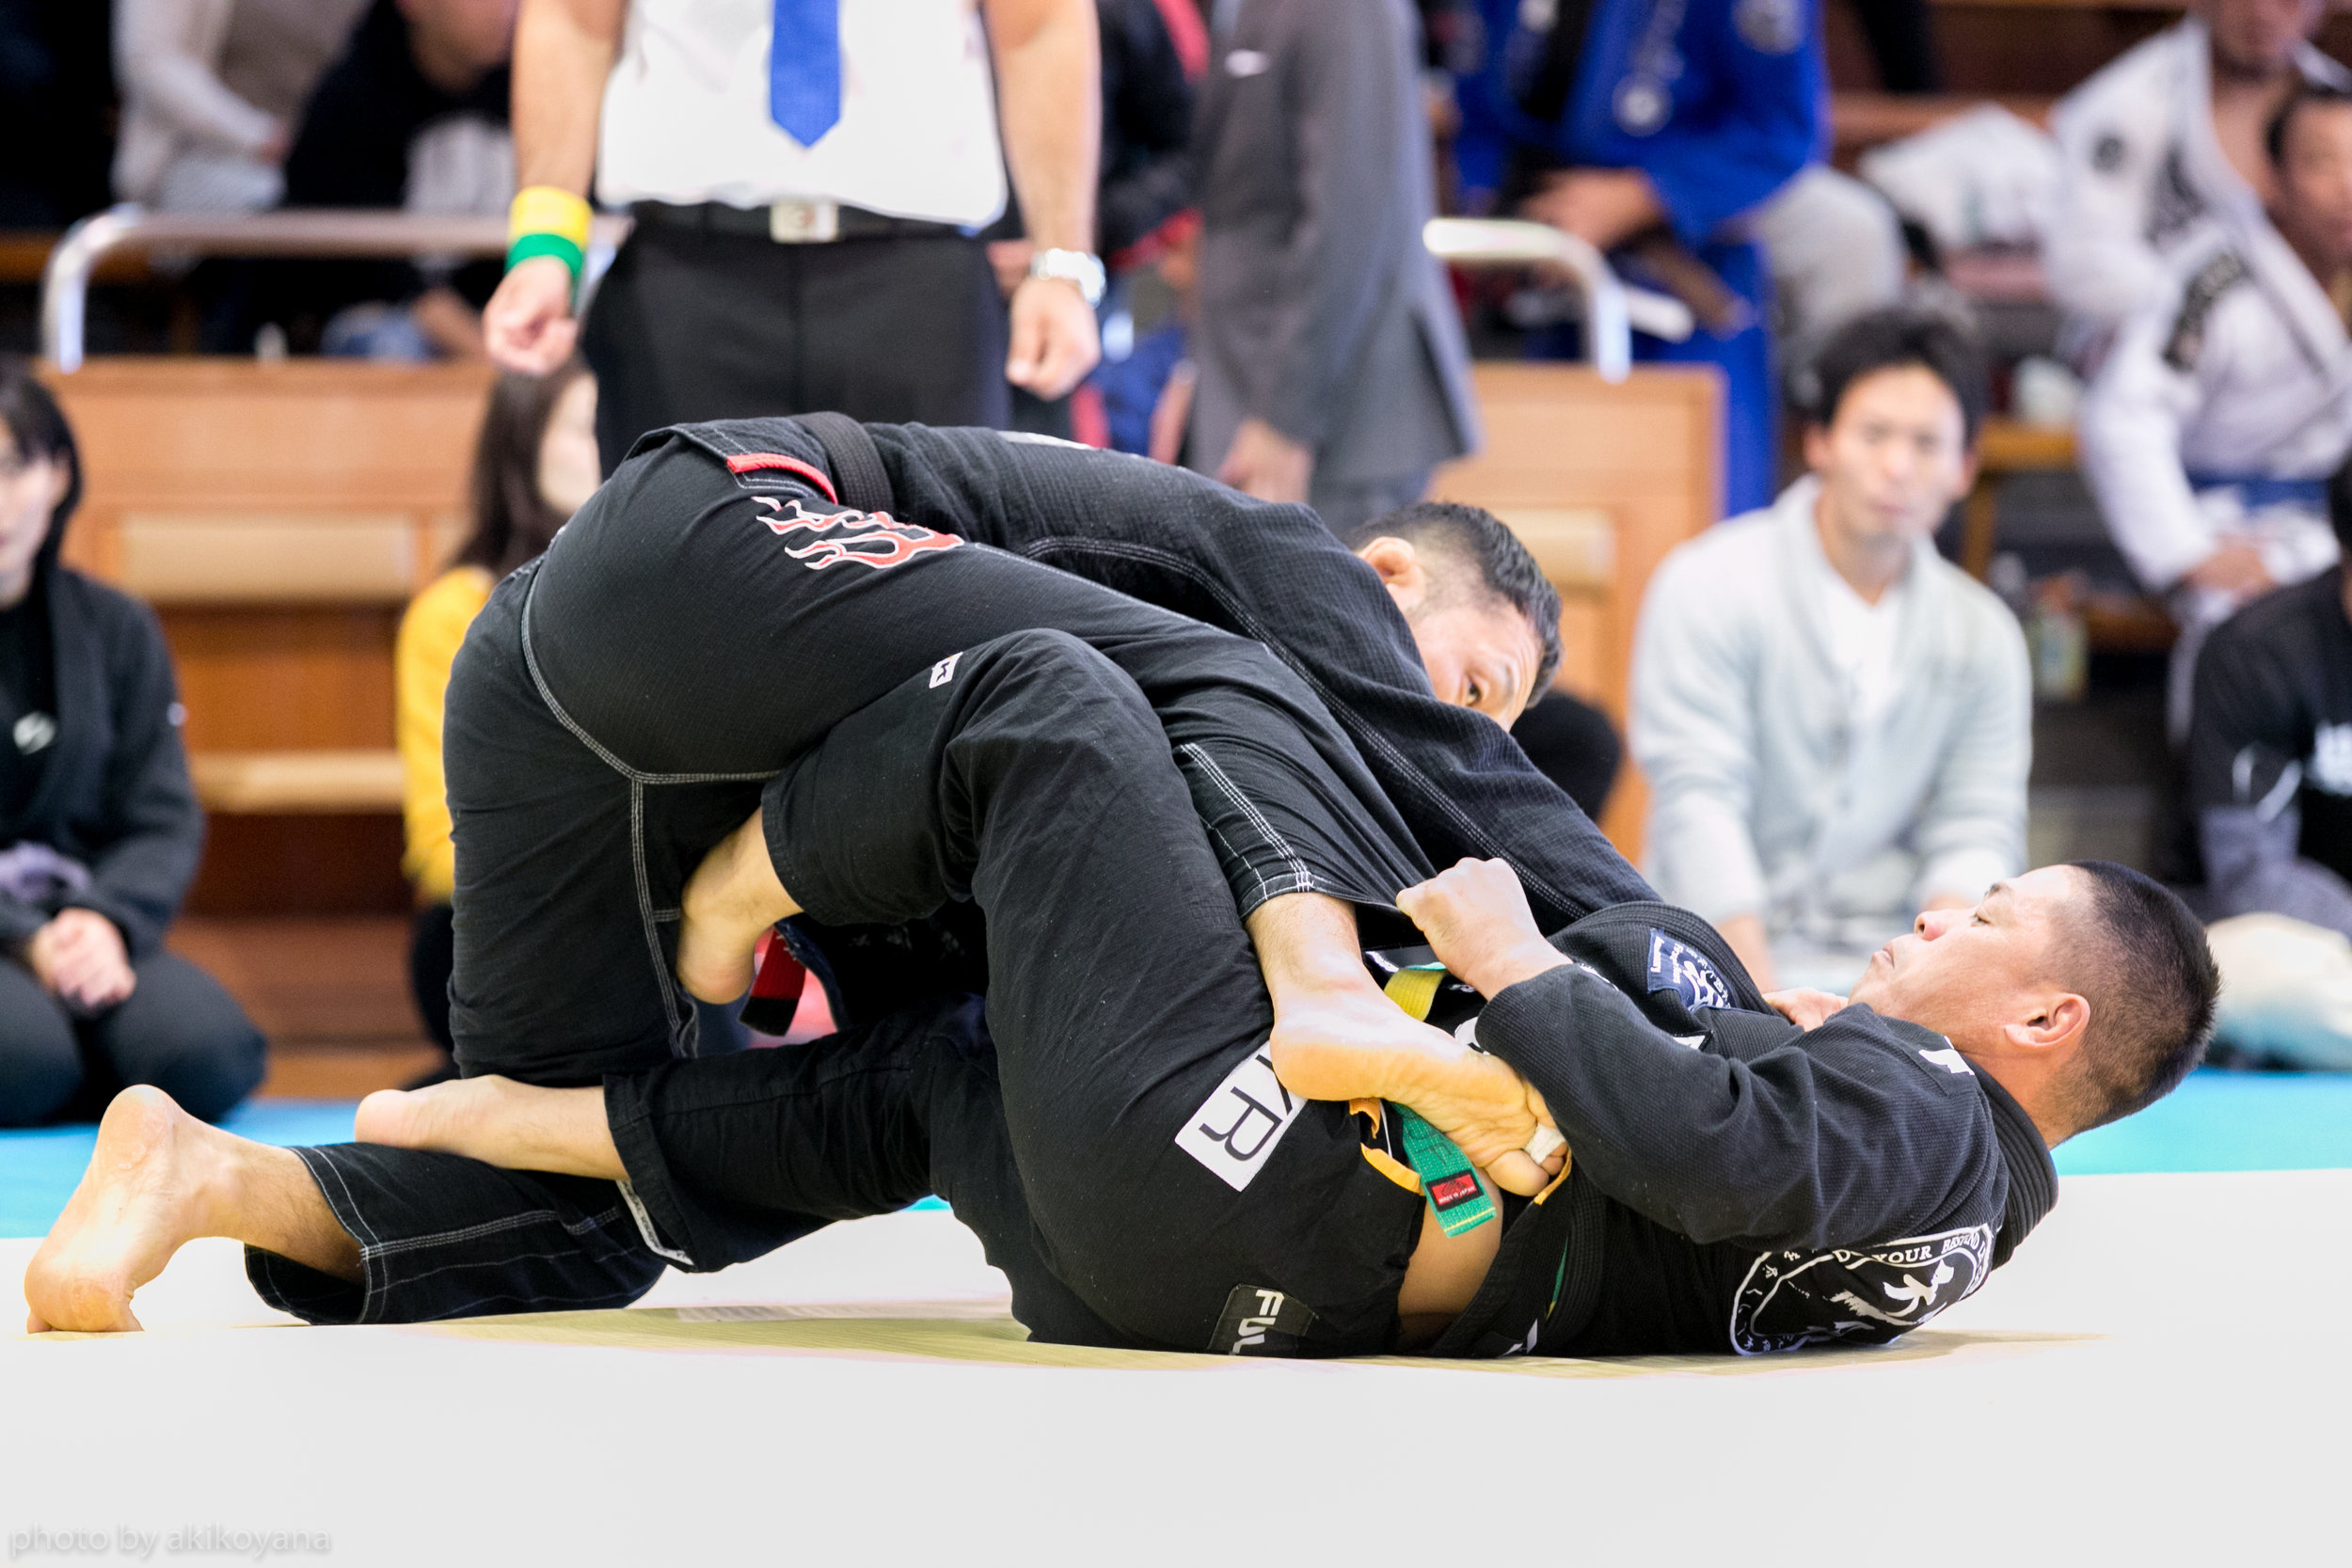 This is the largest study of BJJ submissions that we've ever done. It took over two months to complete.